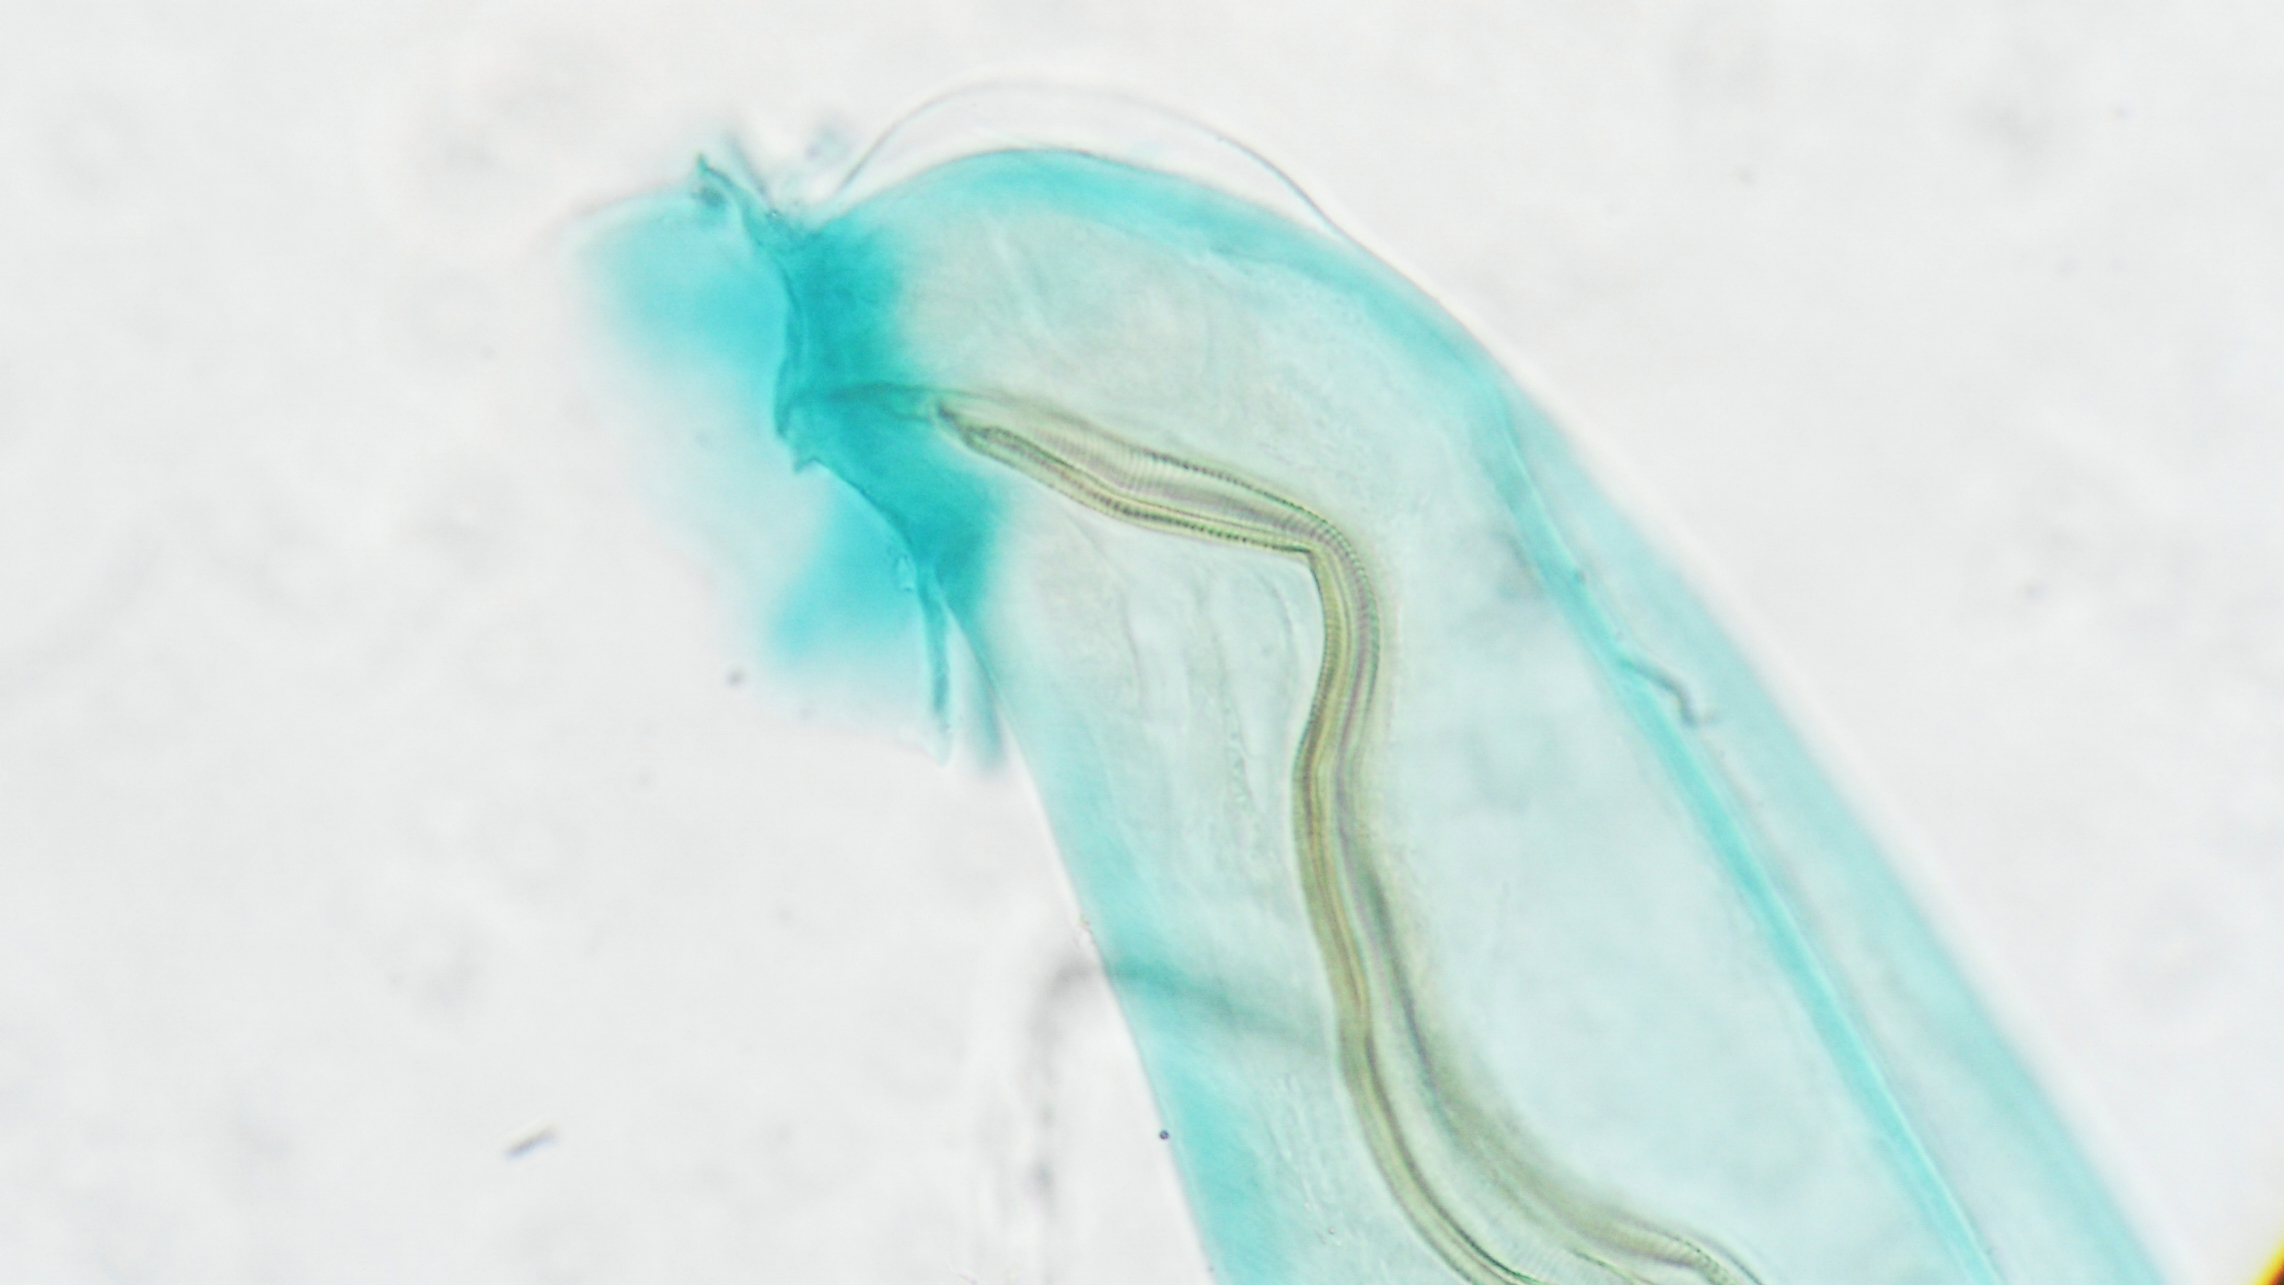 microscopic view of a parasite named Angiostrongylus cantonensis or rat lungworm, it's a round worm.